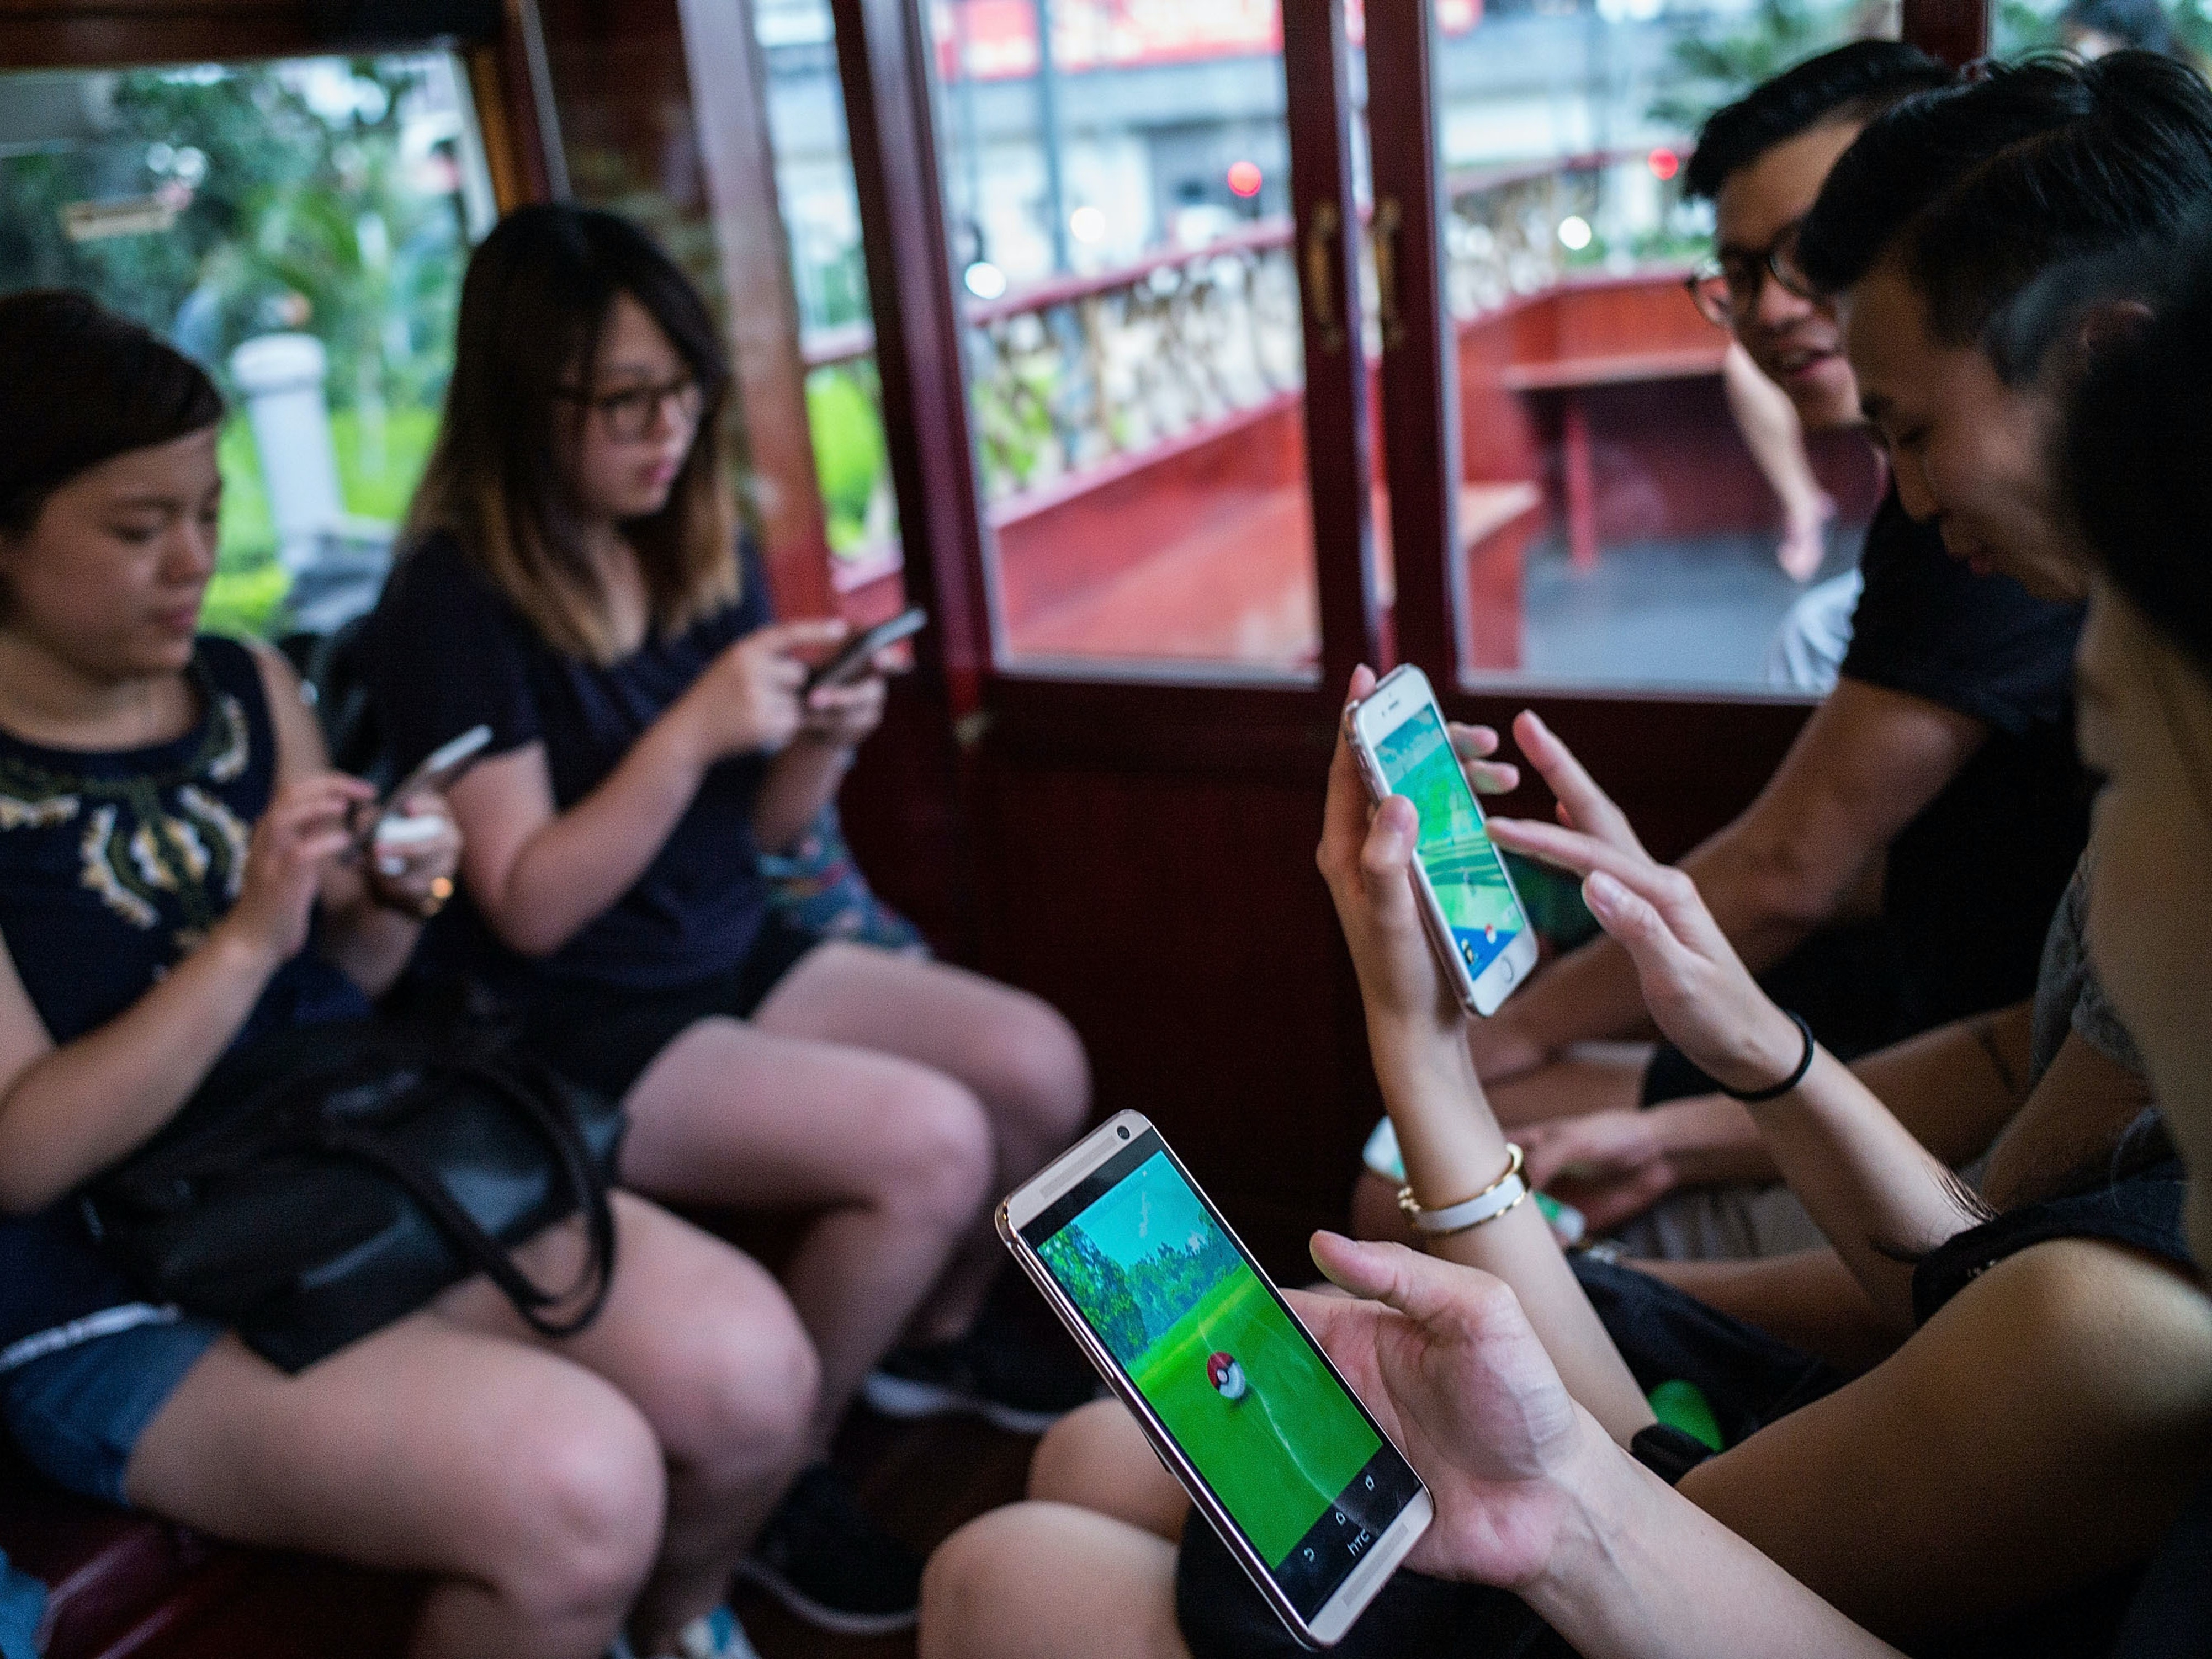 HONG KONG - JULY 30:  People join the Hong Kong's first Pokemon Go tram party organized by 'Sam the Local', on July 30, 2016 in Hong Kong, Hong Kong. Hundreds of youths attended the 18th Ani-Com and Games Hong Kong fair dressed as Japanese comic characters as the reality smartphone game Pokemon GO was launched in Hong Kong this week following the release of the app in Japan. Based on reports, shopping malls and local businesses in Hong Kong are offering Pokemon-related activities to draw in crowds that have flooded the streets to capture Pokemon while authorities aim to ban the game at public hospitals and schools after receiving complaints from the public.  (Photo by Lam Yik Fei/Getty Images)